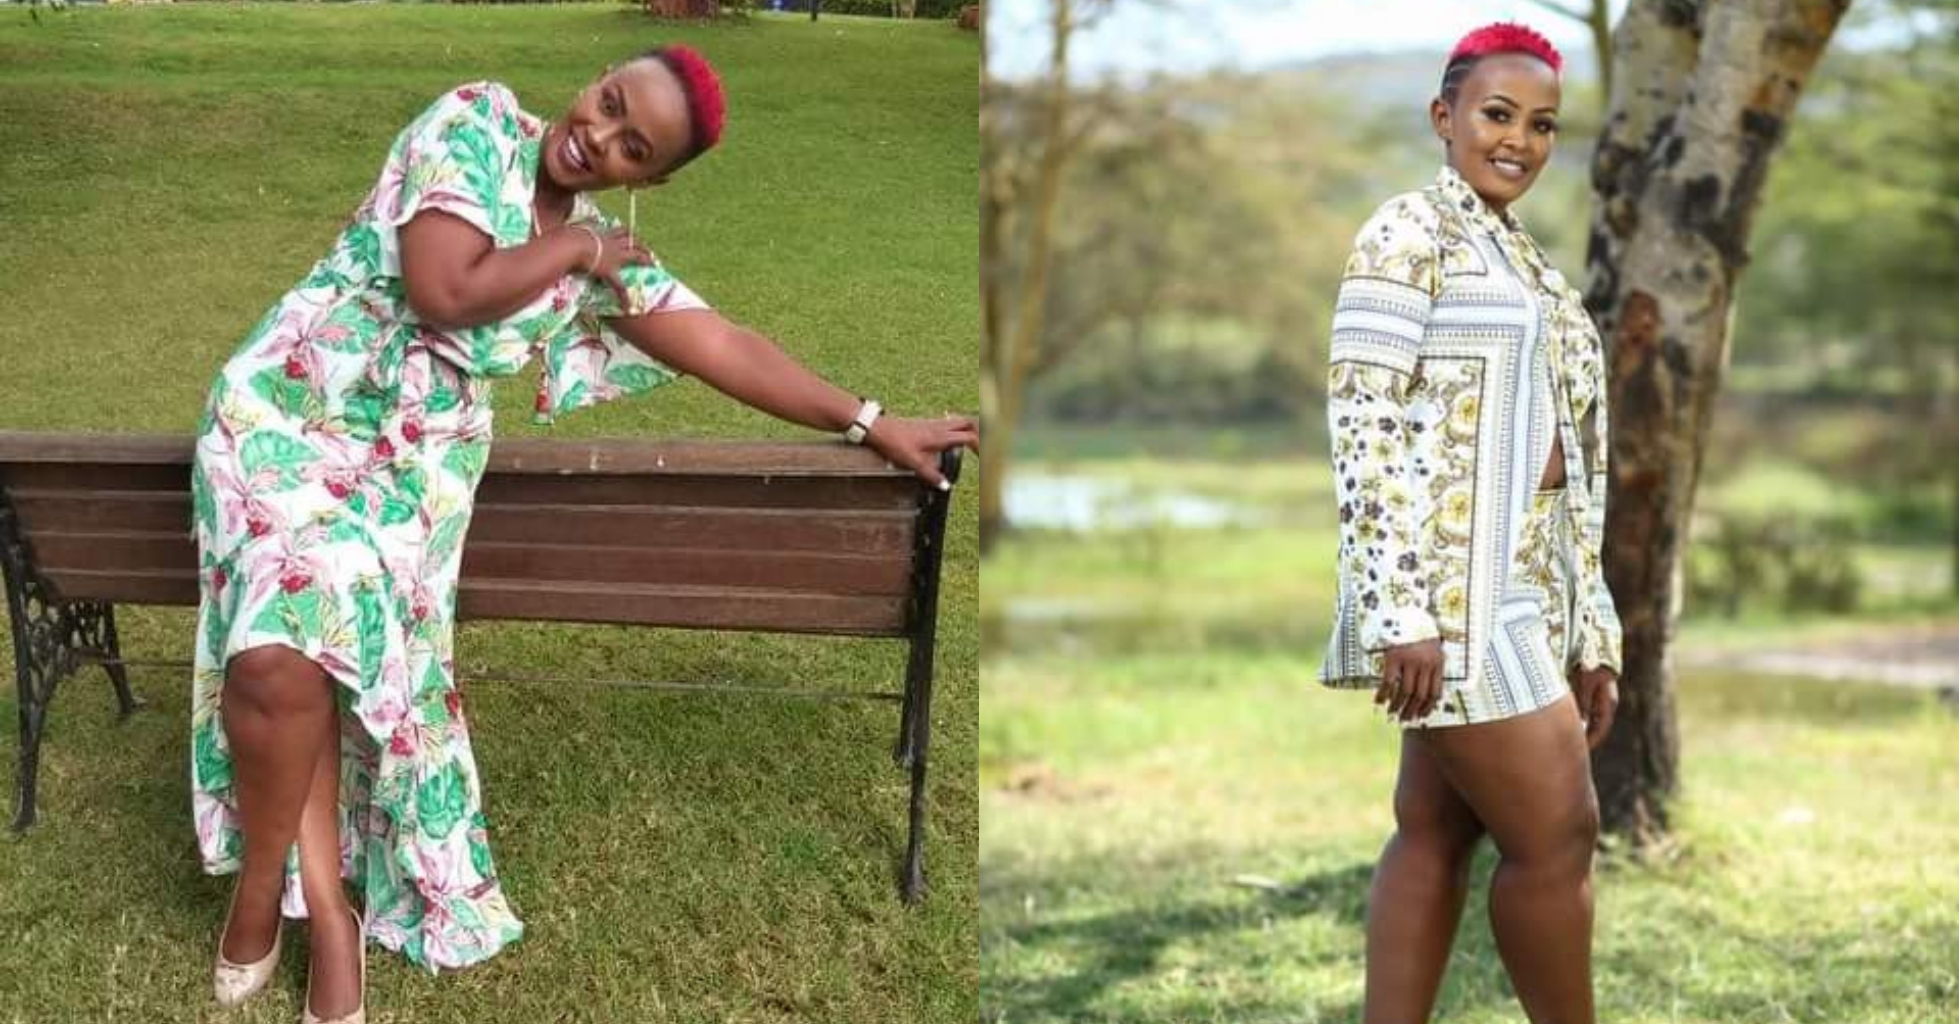 Kenyan woman confesses to intentionally infecting many men